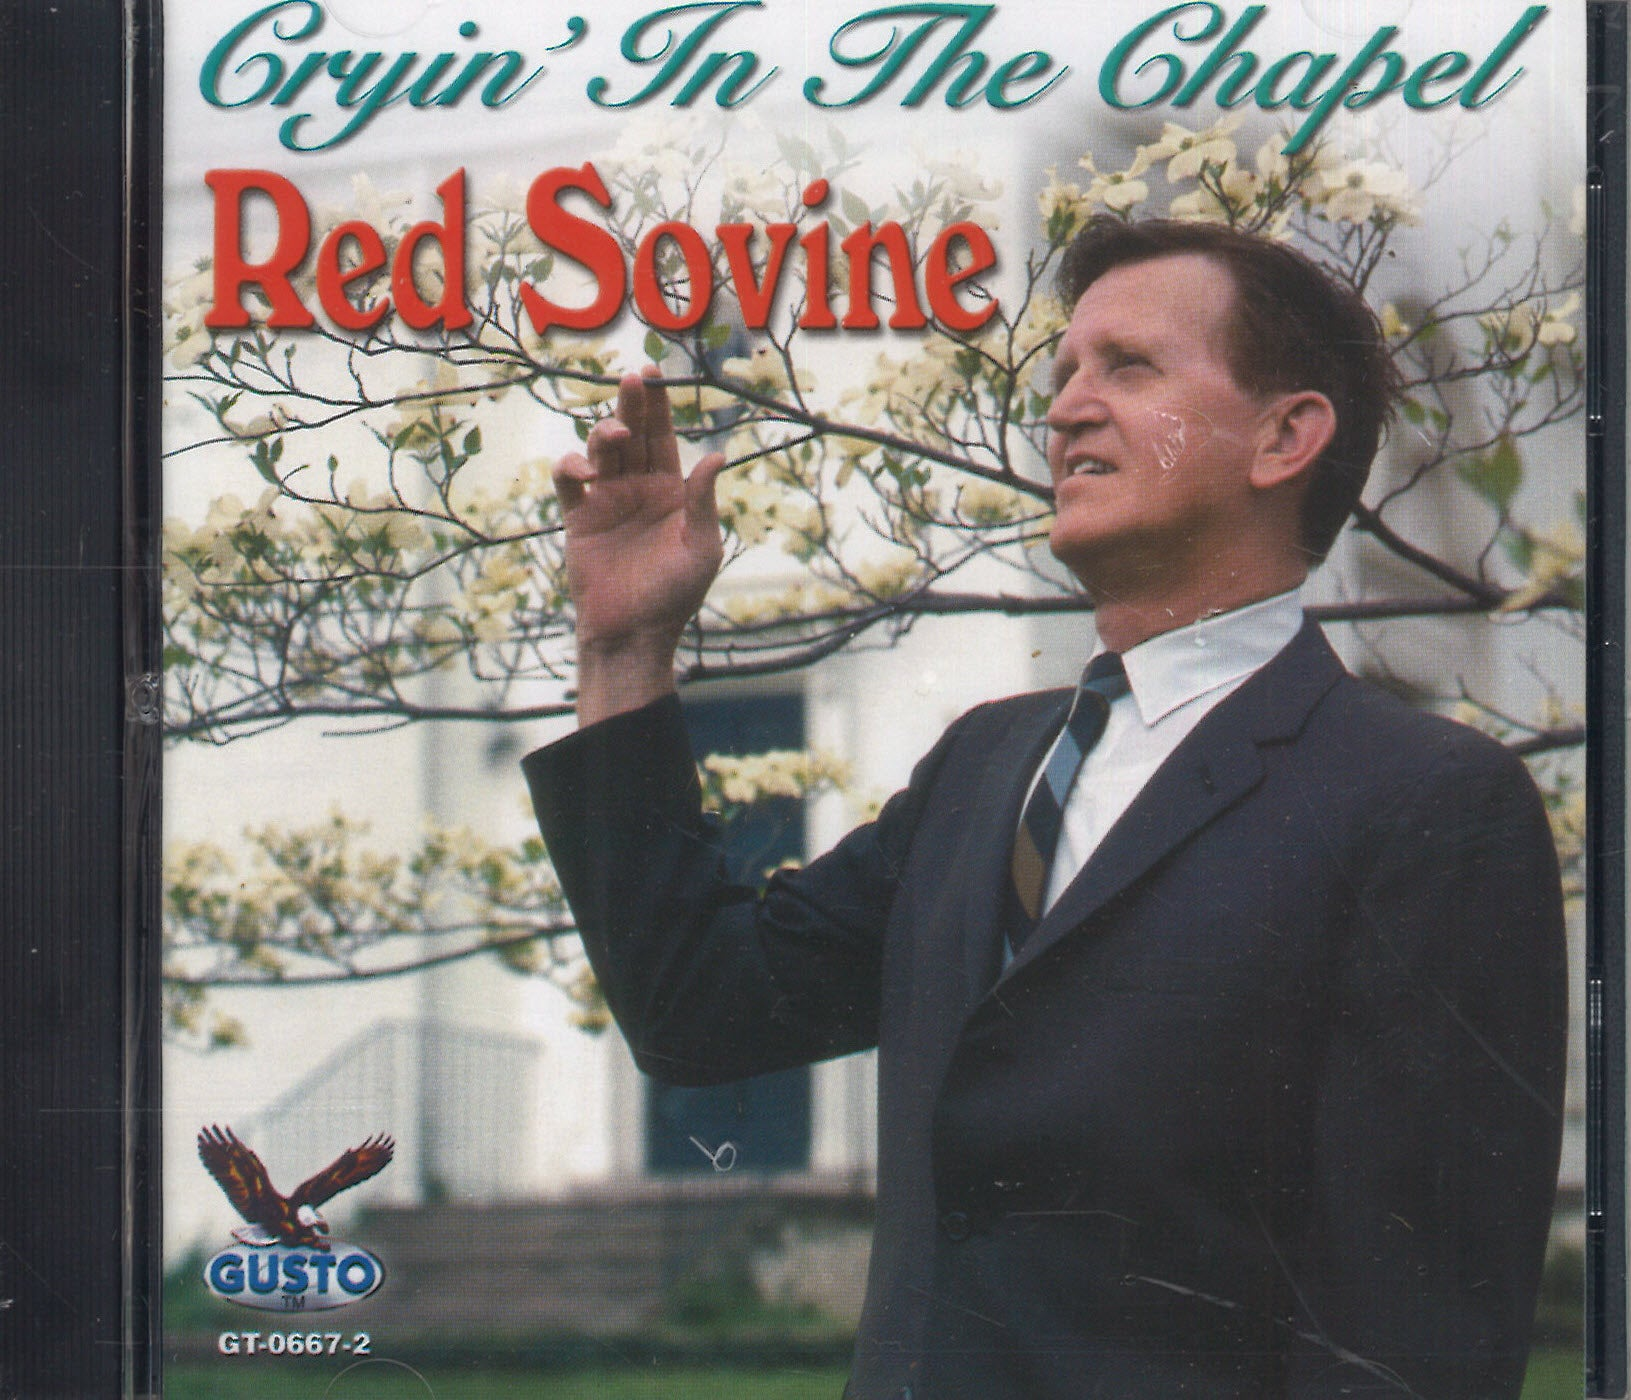 Red Sovine Cryin' In The Chapel